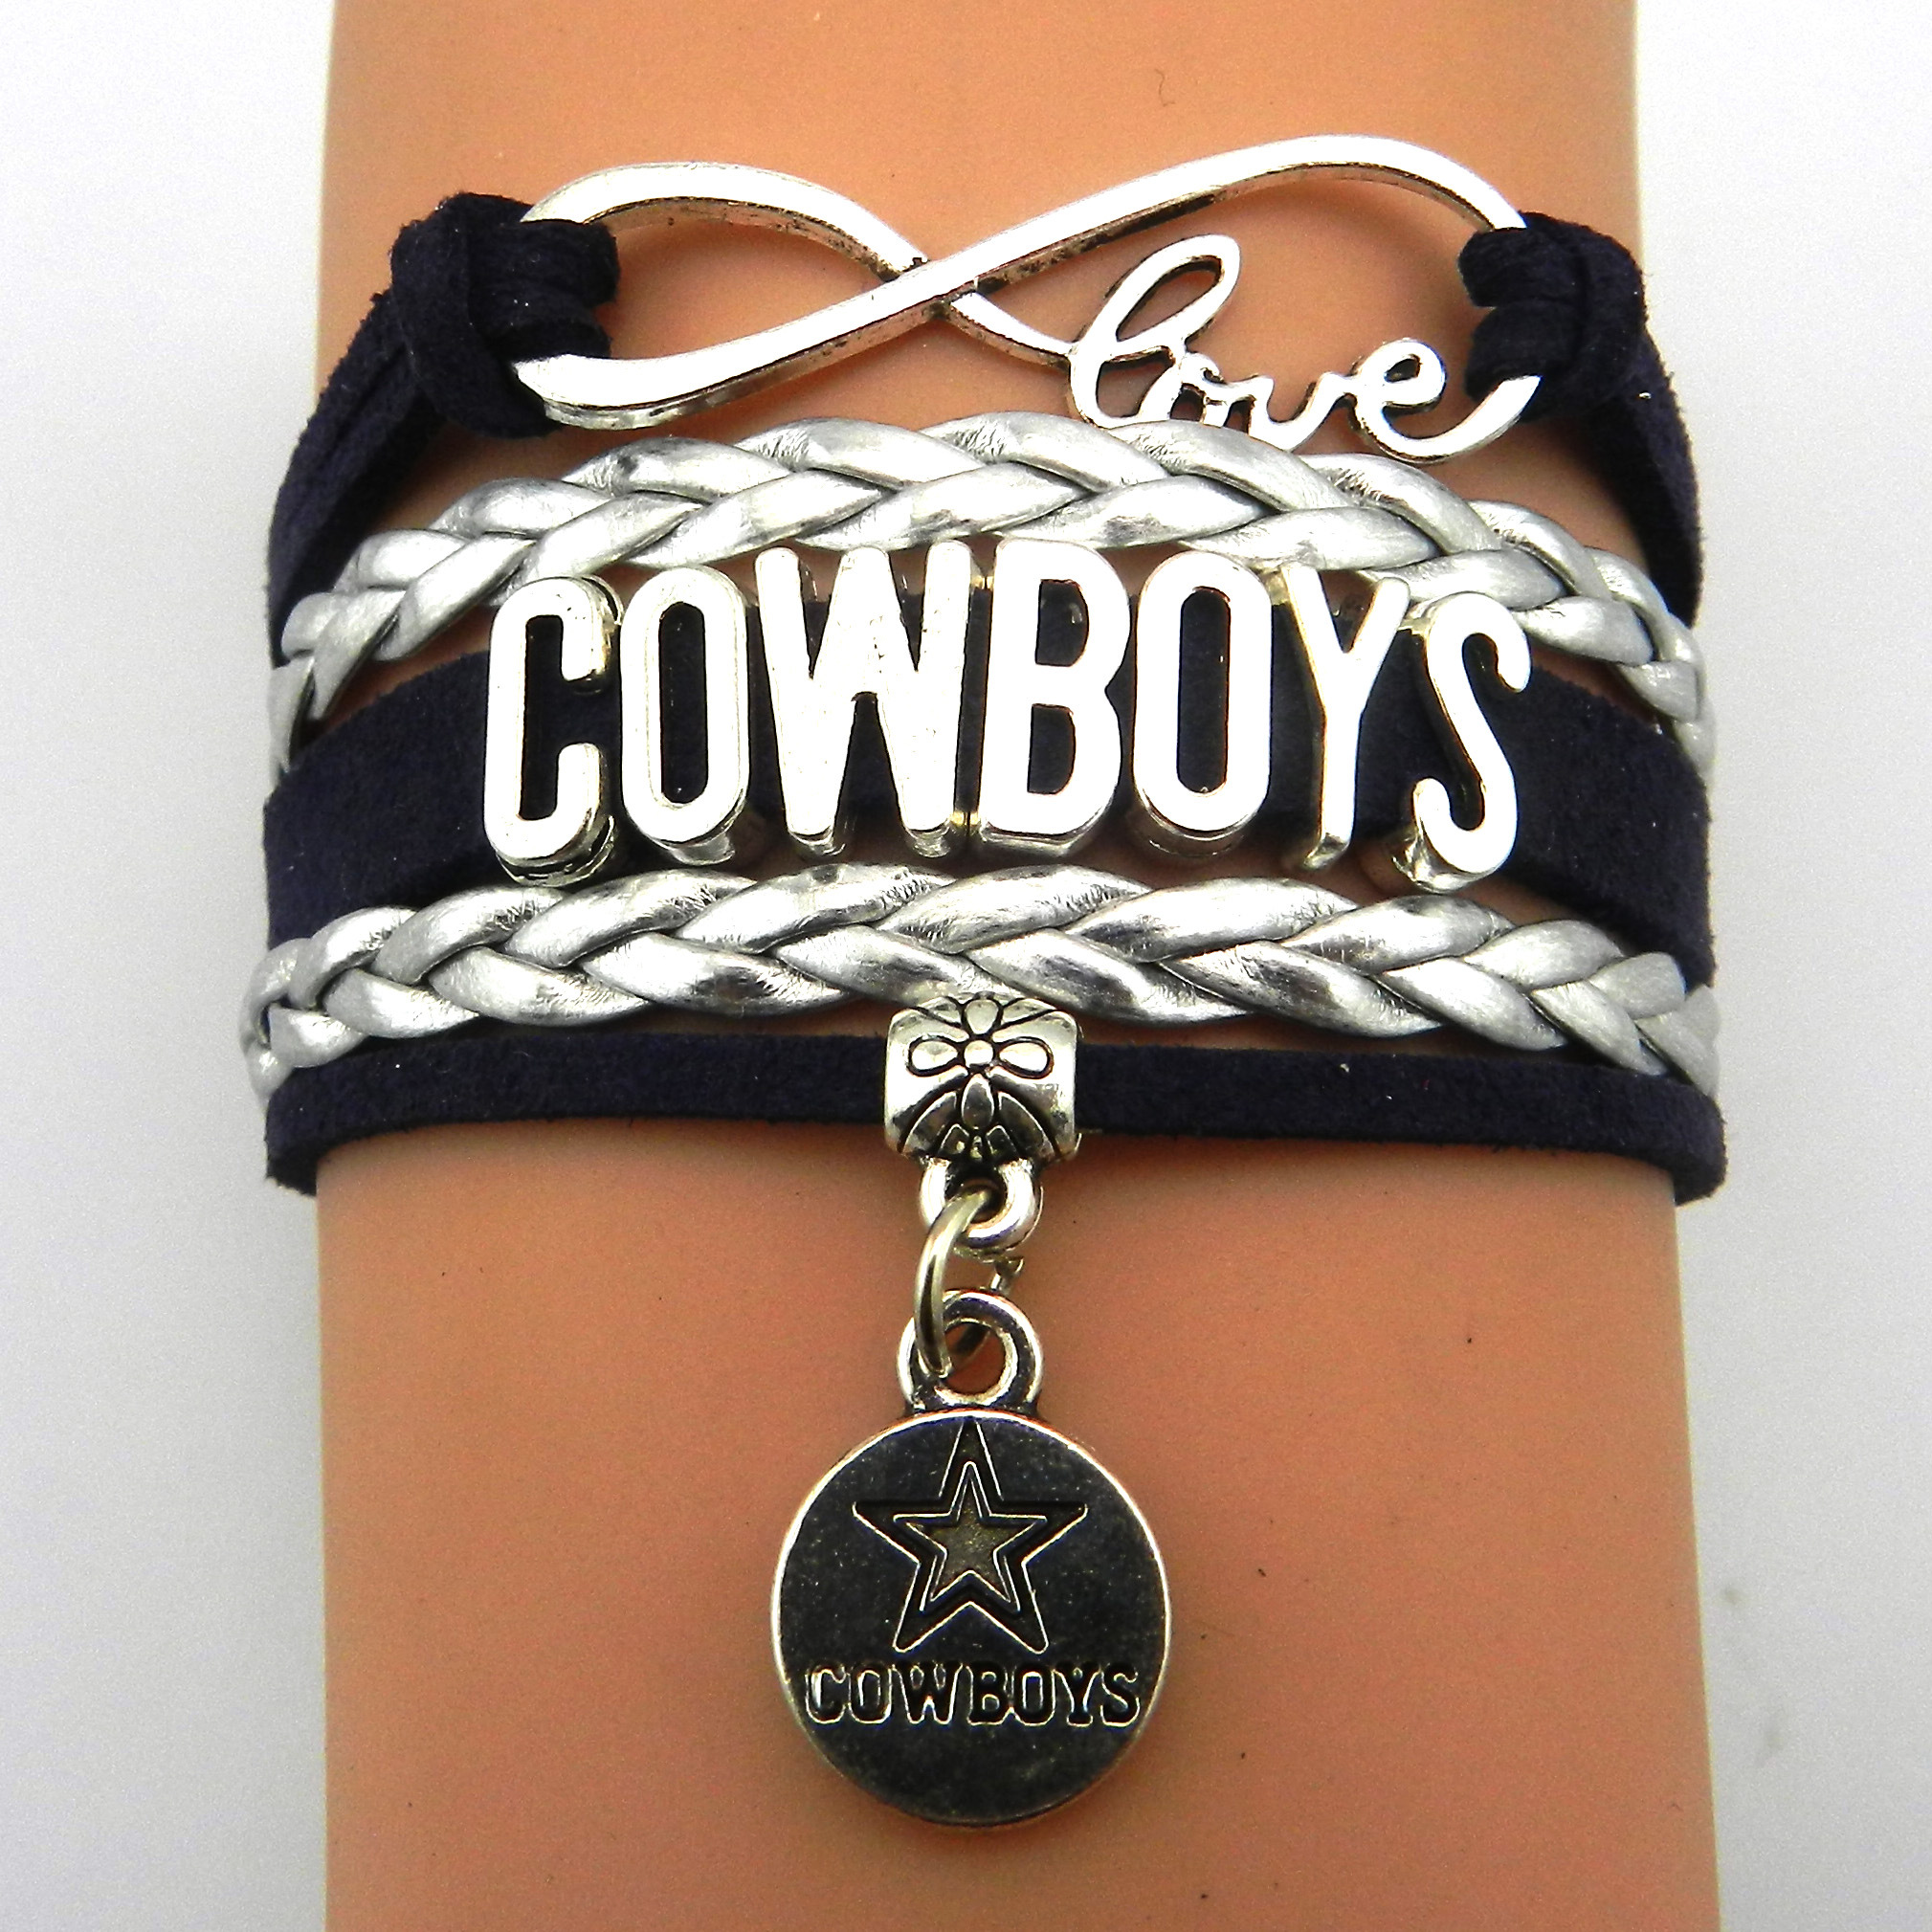 Infinity Love Dallas Cowboys Bracelet Sport Gift Football Team Charm Bangles For Women Men Jewelry Drop Shipping In Bracelets From